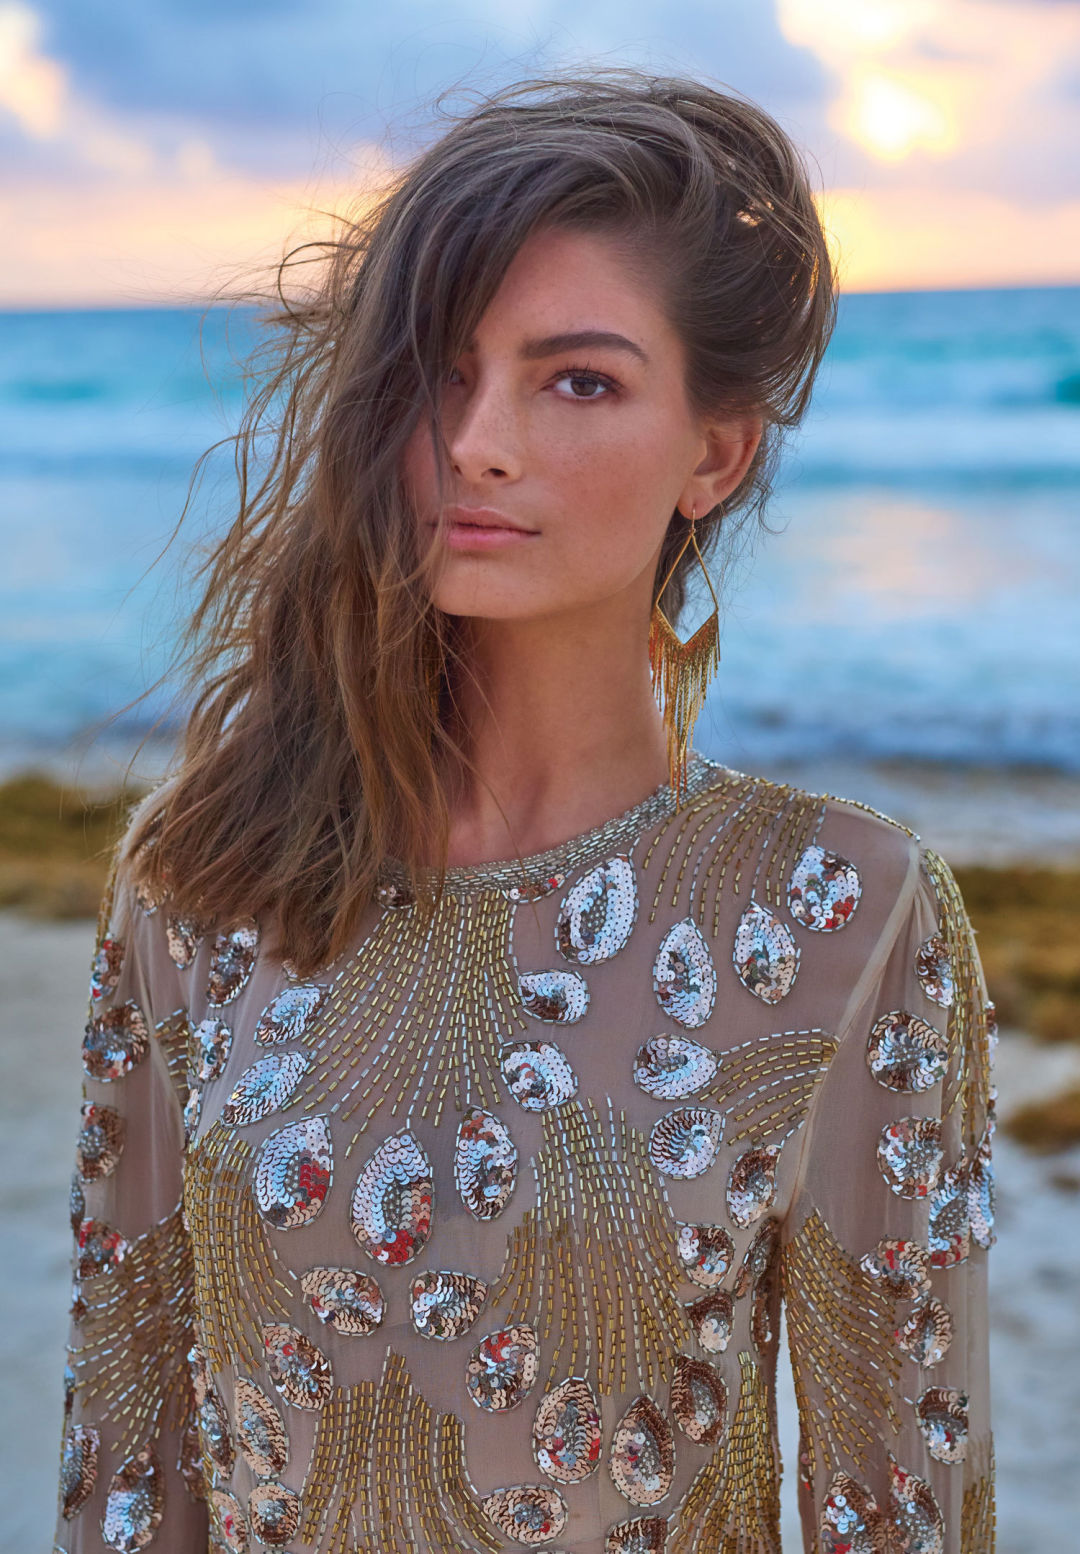 Gorgeous Gowns & Stylish Suits for Destination Beach Weddings ...